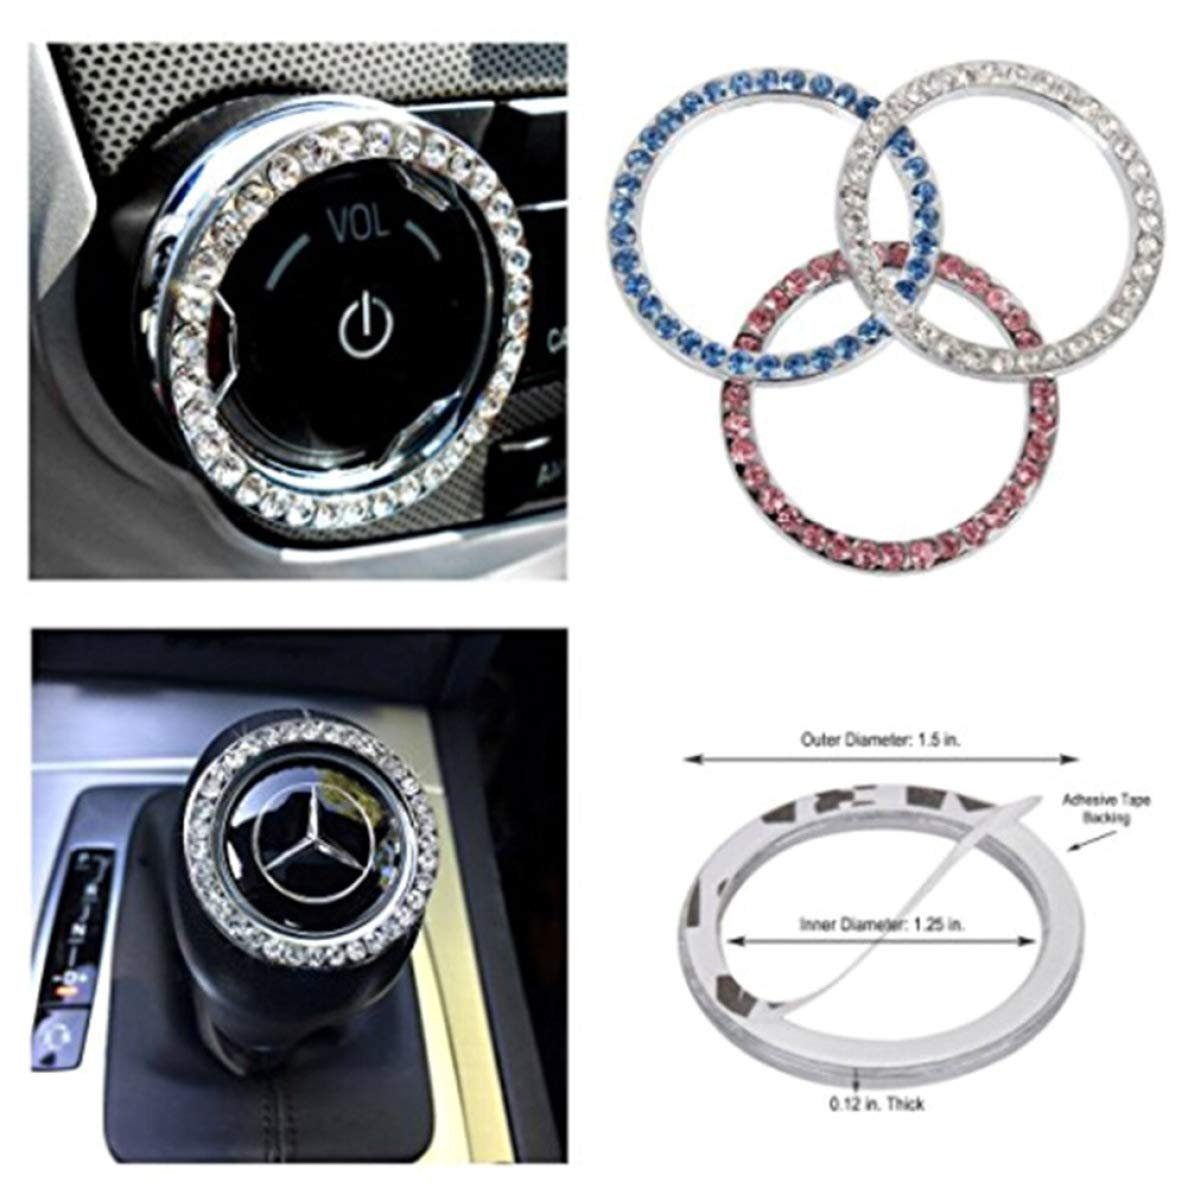 YiOQIBiao faultless Styling Car Accessories,Crystal Car Engine Start Stop Ignition Key Ring For Car Color random